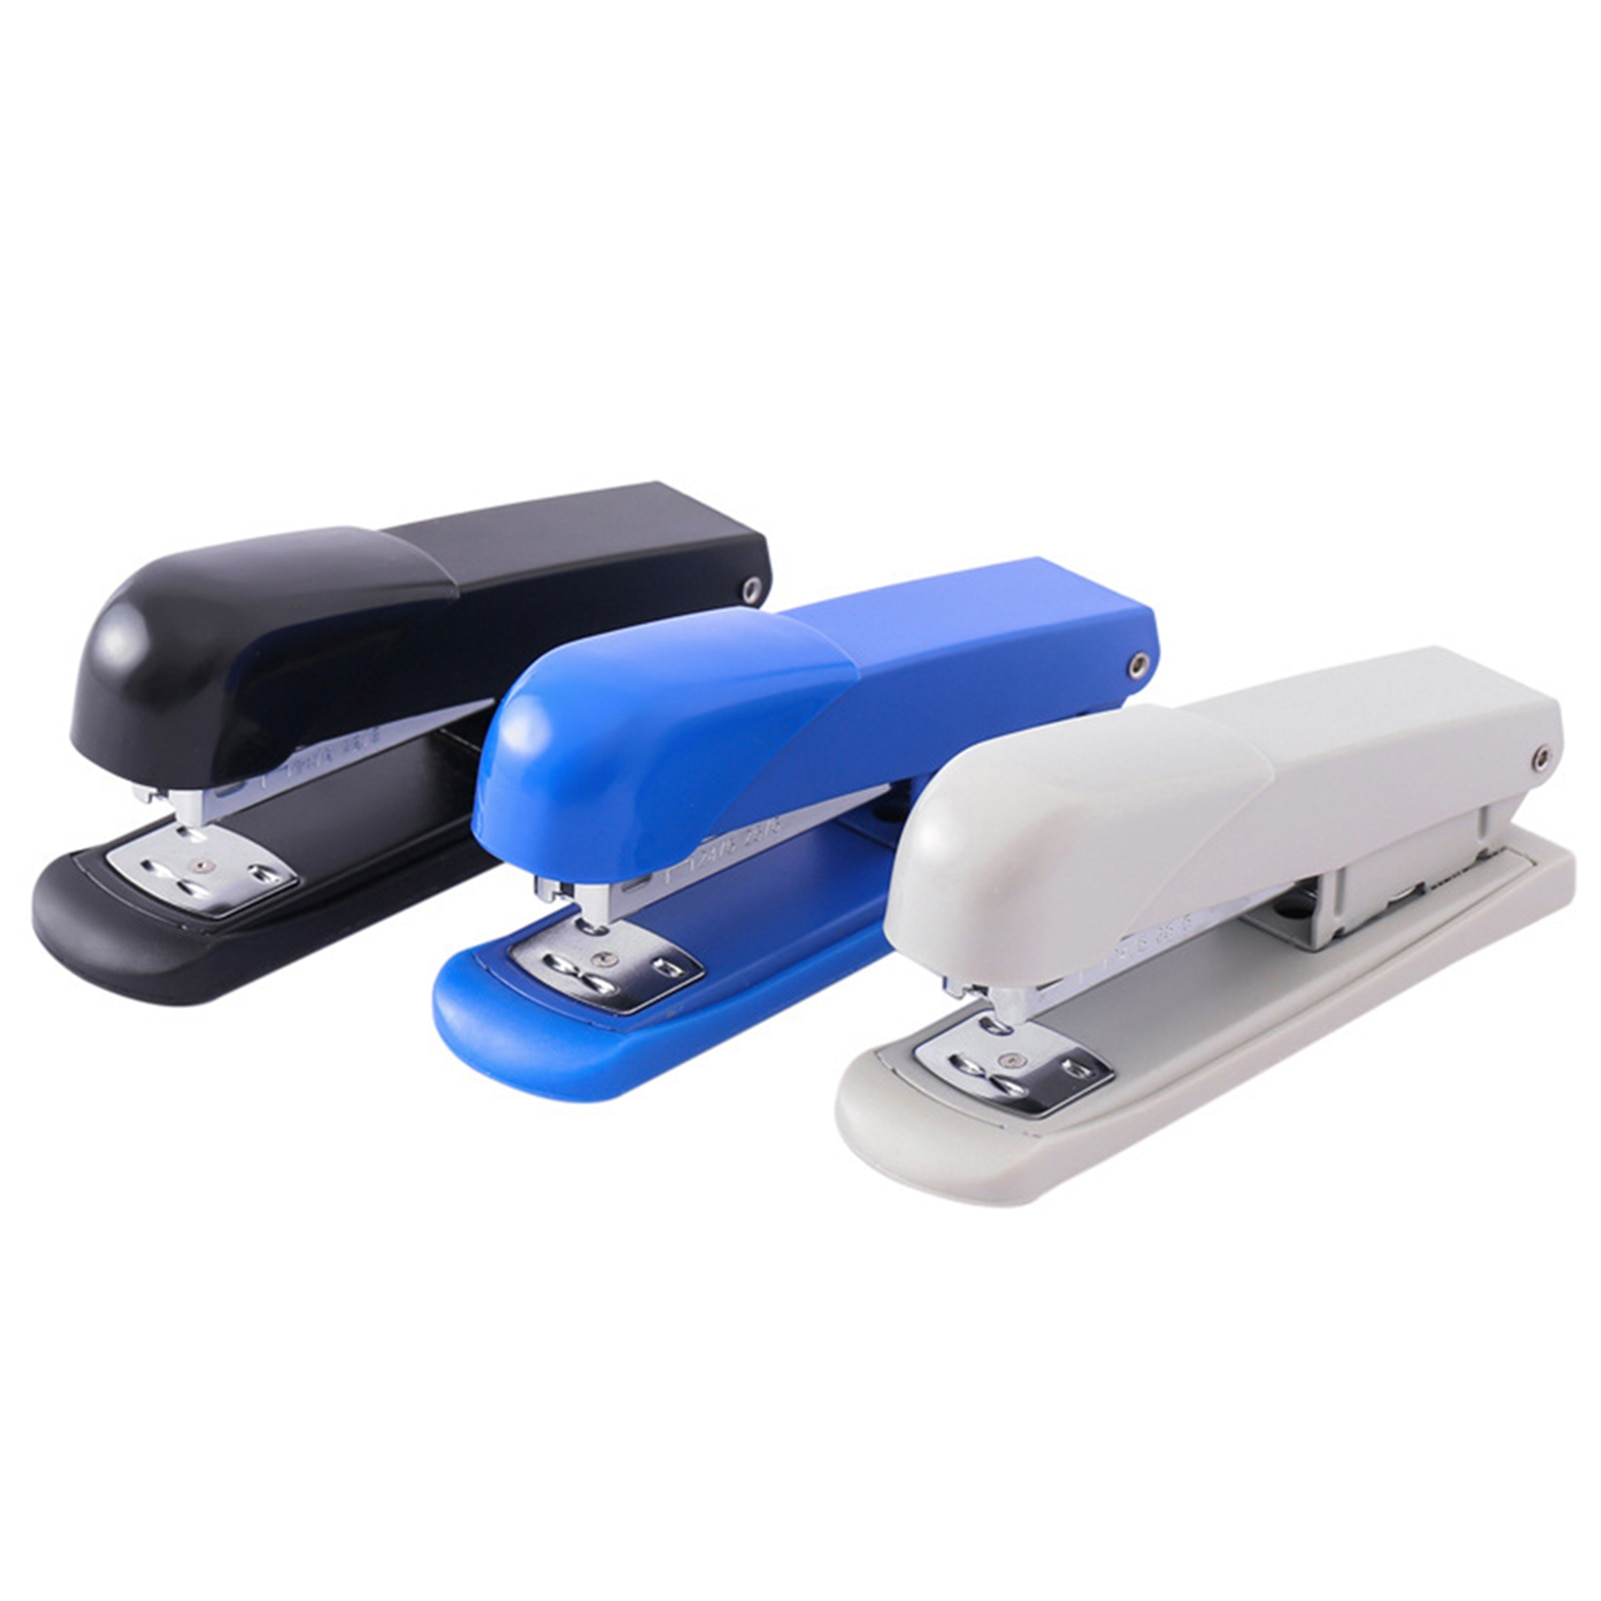 Hot selling cheap Bookbinding Machine School Manual Business Office Book Sewer Stationery Home Desktop Stapler Student